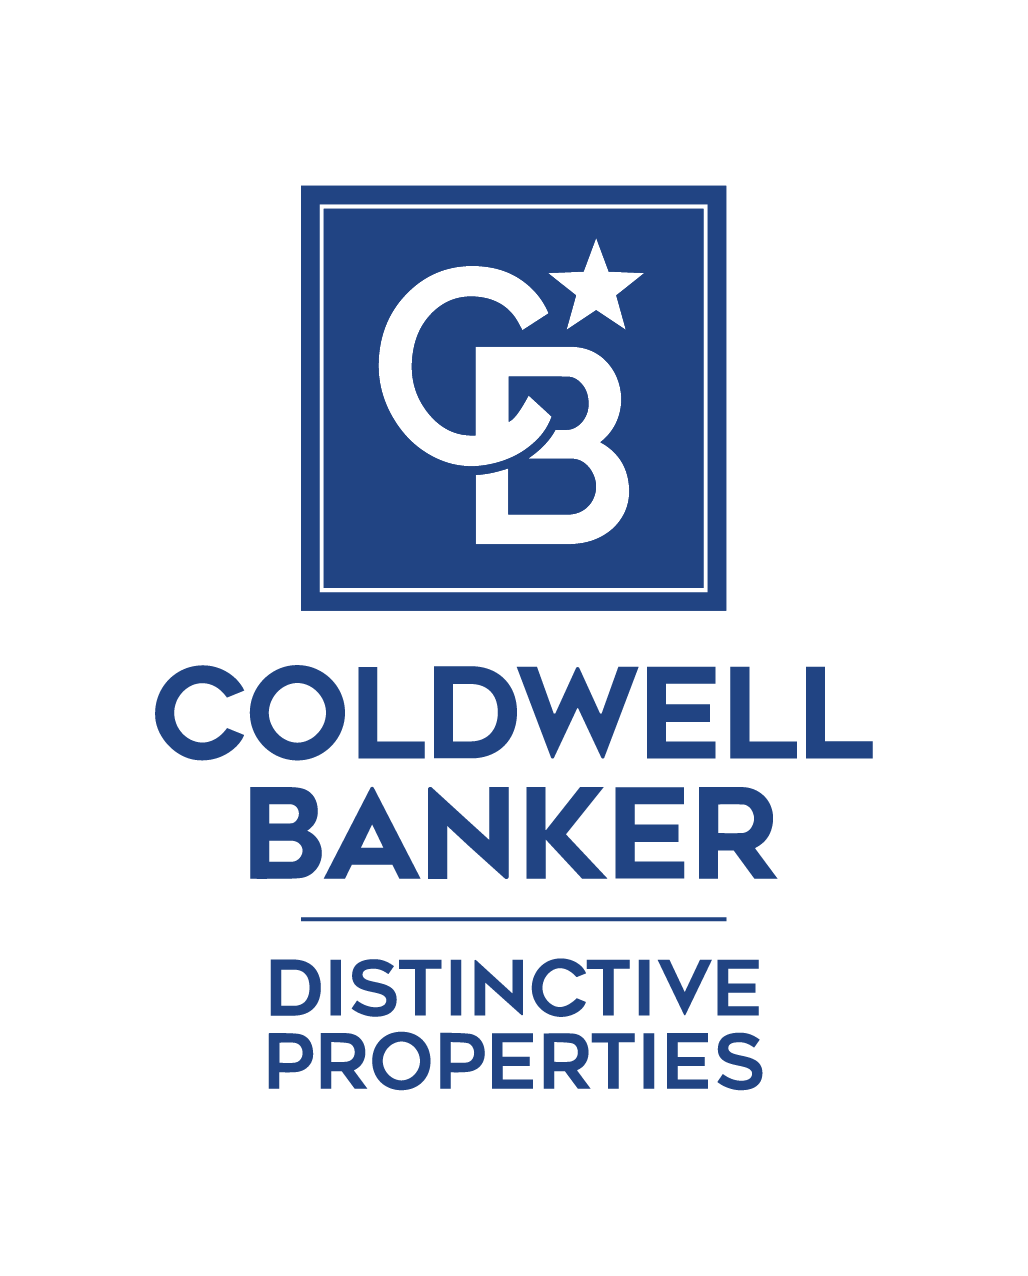 Robert McHugh - Coldwell Banker Distinctive Properties Logo